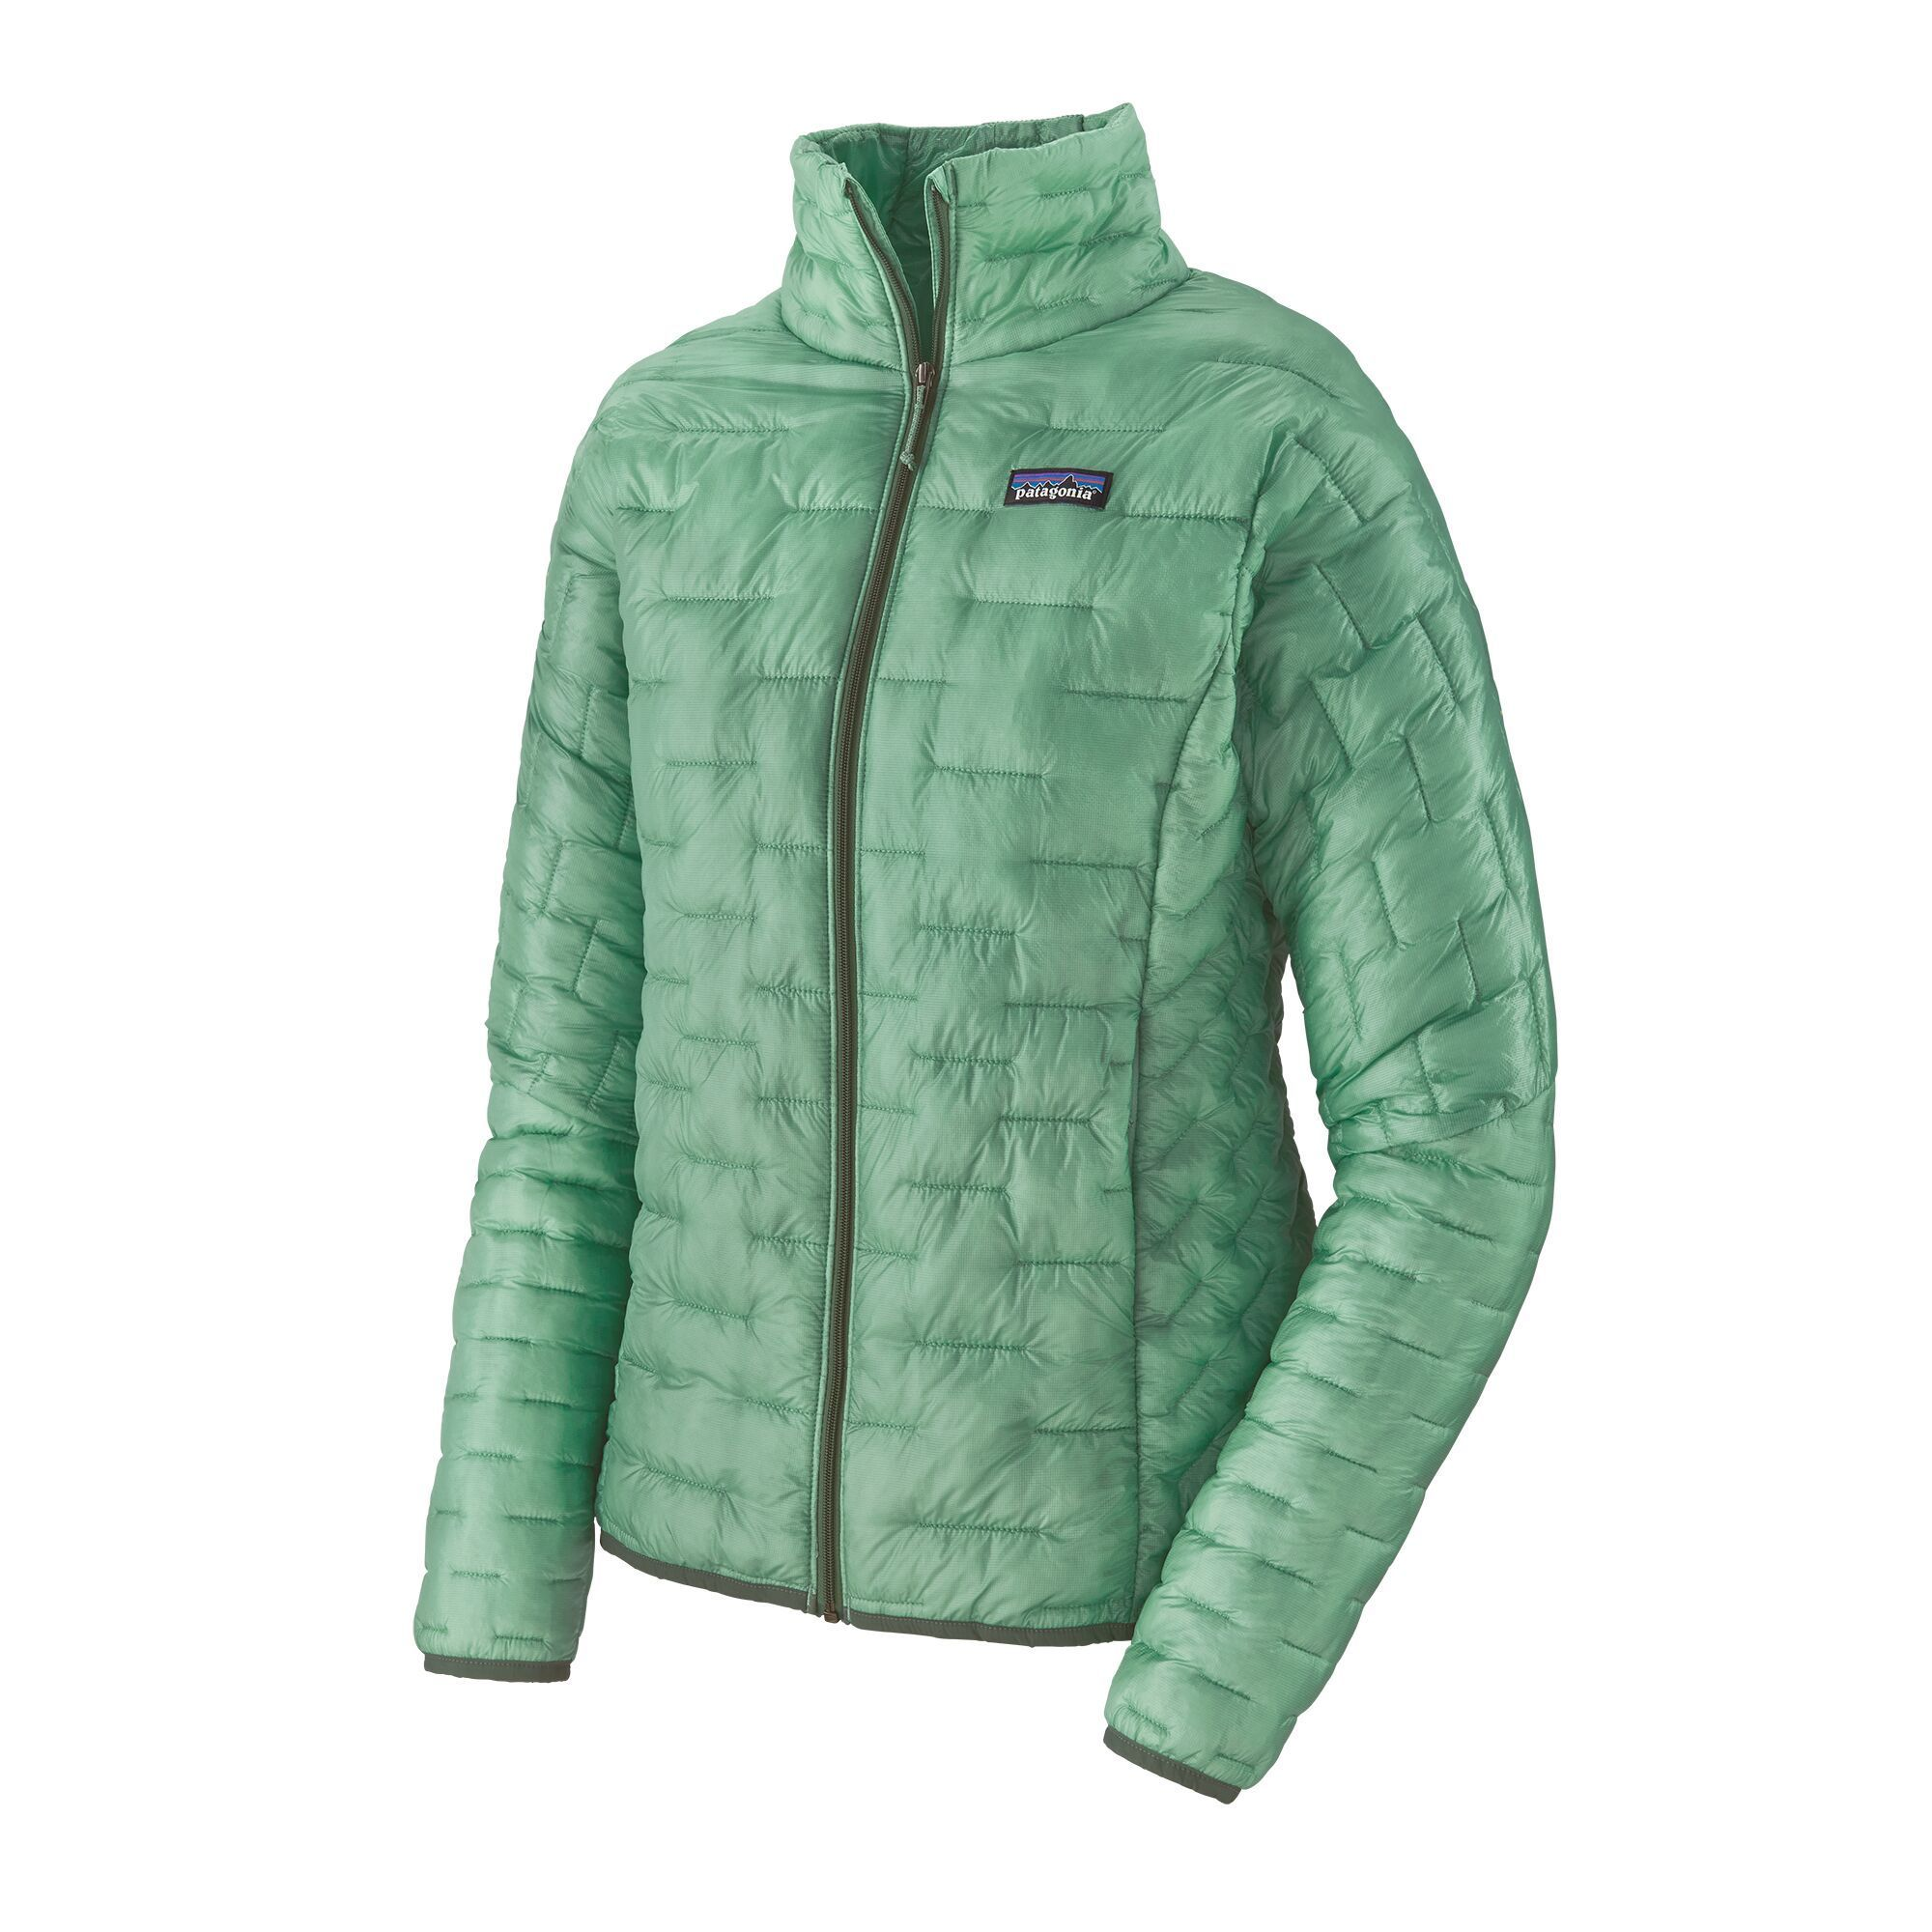 Patagonia - Micro Puff® Jacket - Fair Trade Certified sewn - Weekendbee - sustainable sportswear